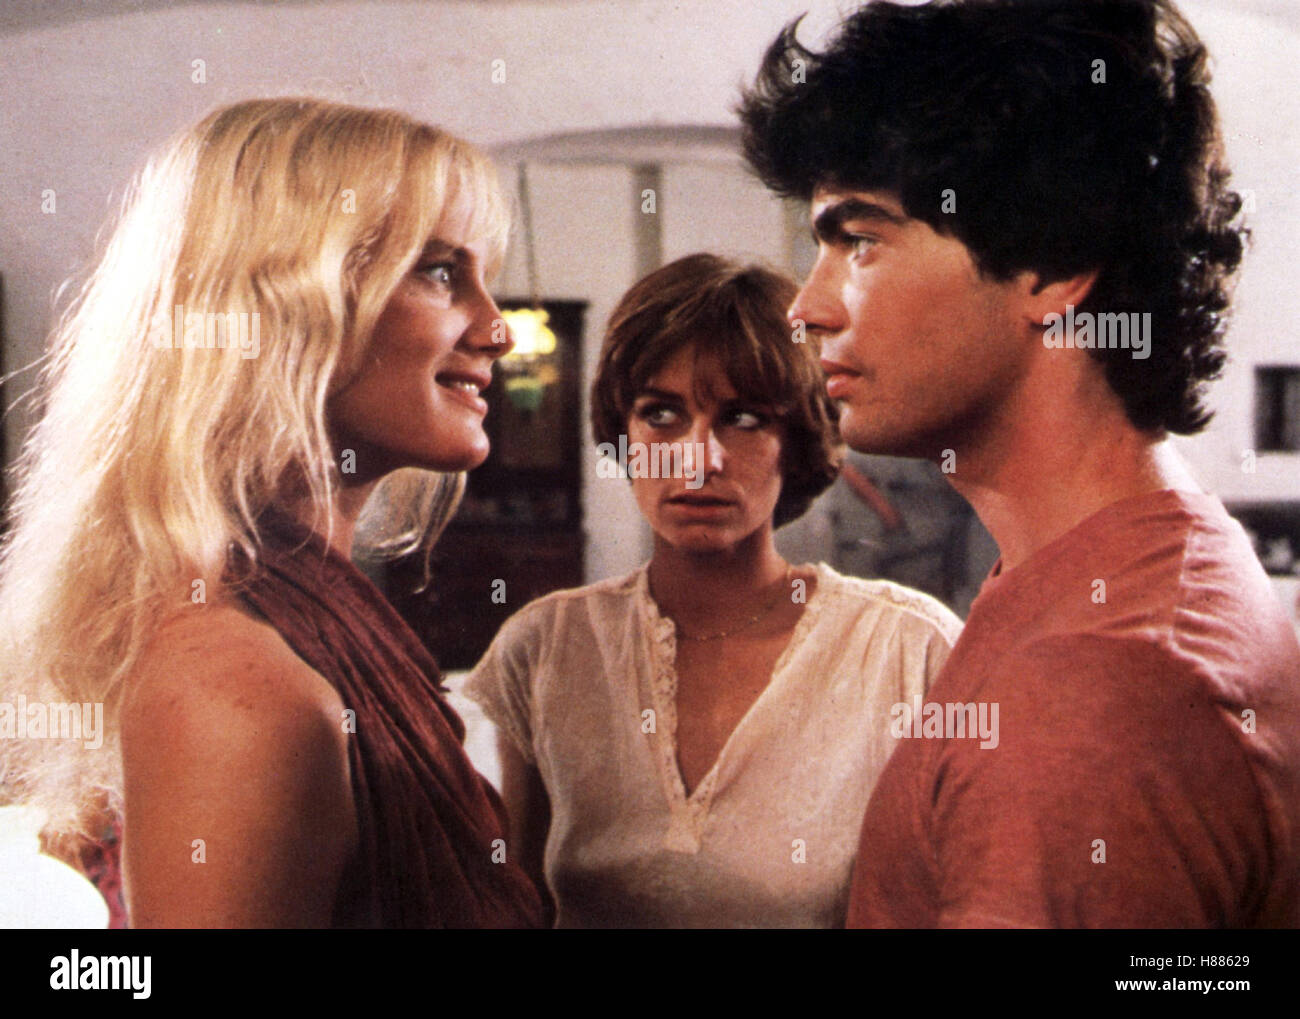 Pictures & Photos from Summer Lovers (1982) - IMDb  |Summer Lovers 1986